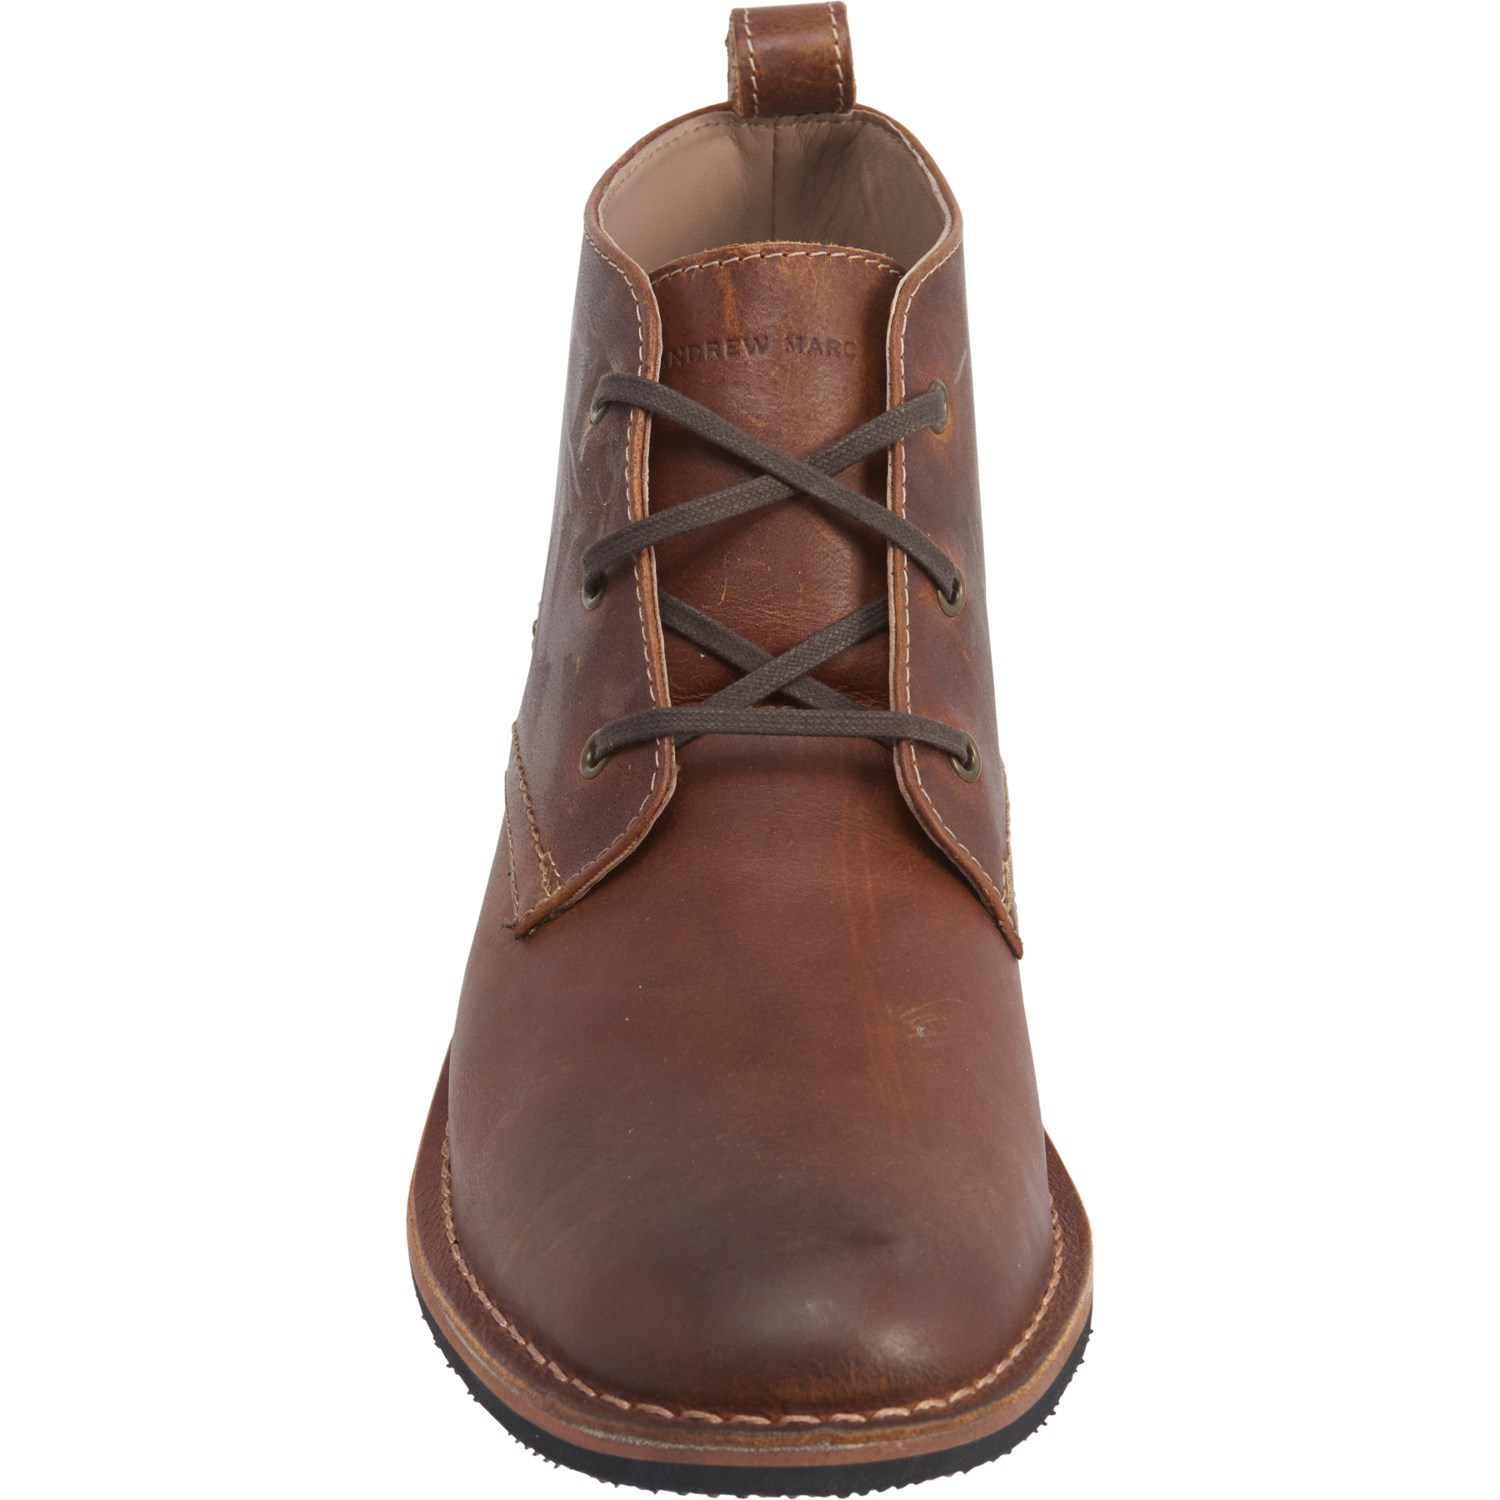 Andrew Marc Dorchester Chukka Boots Suede (For Men)